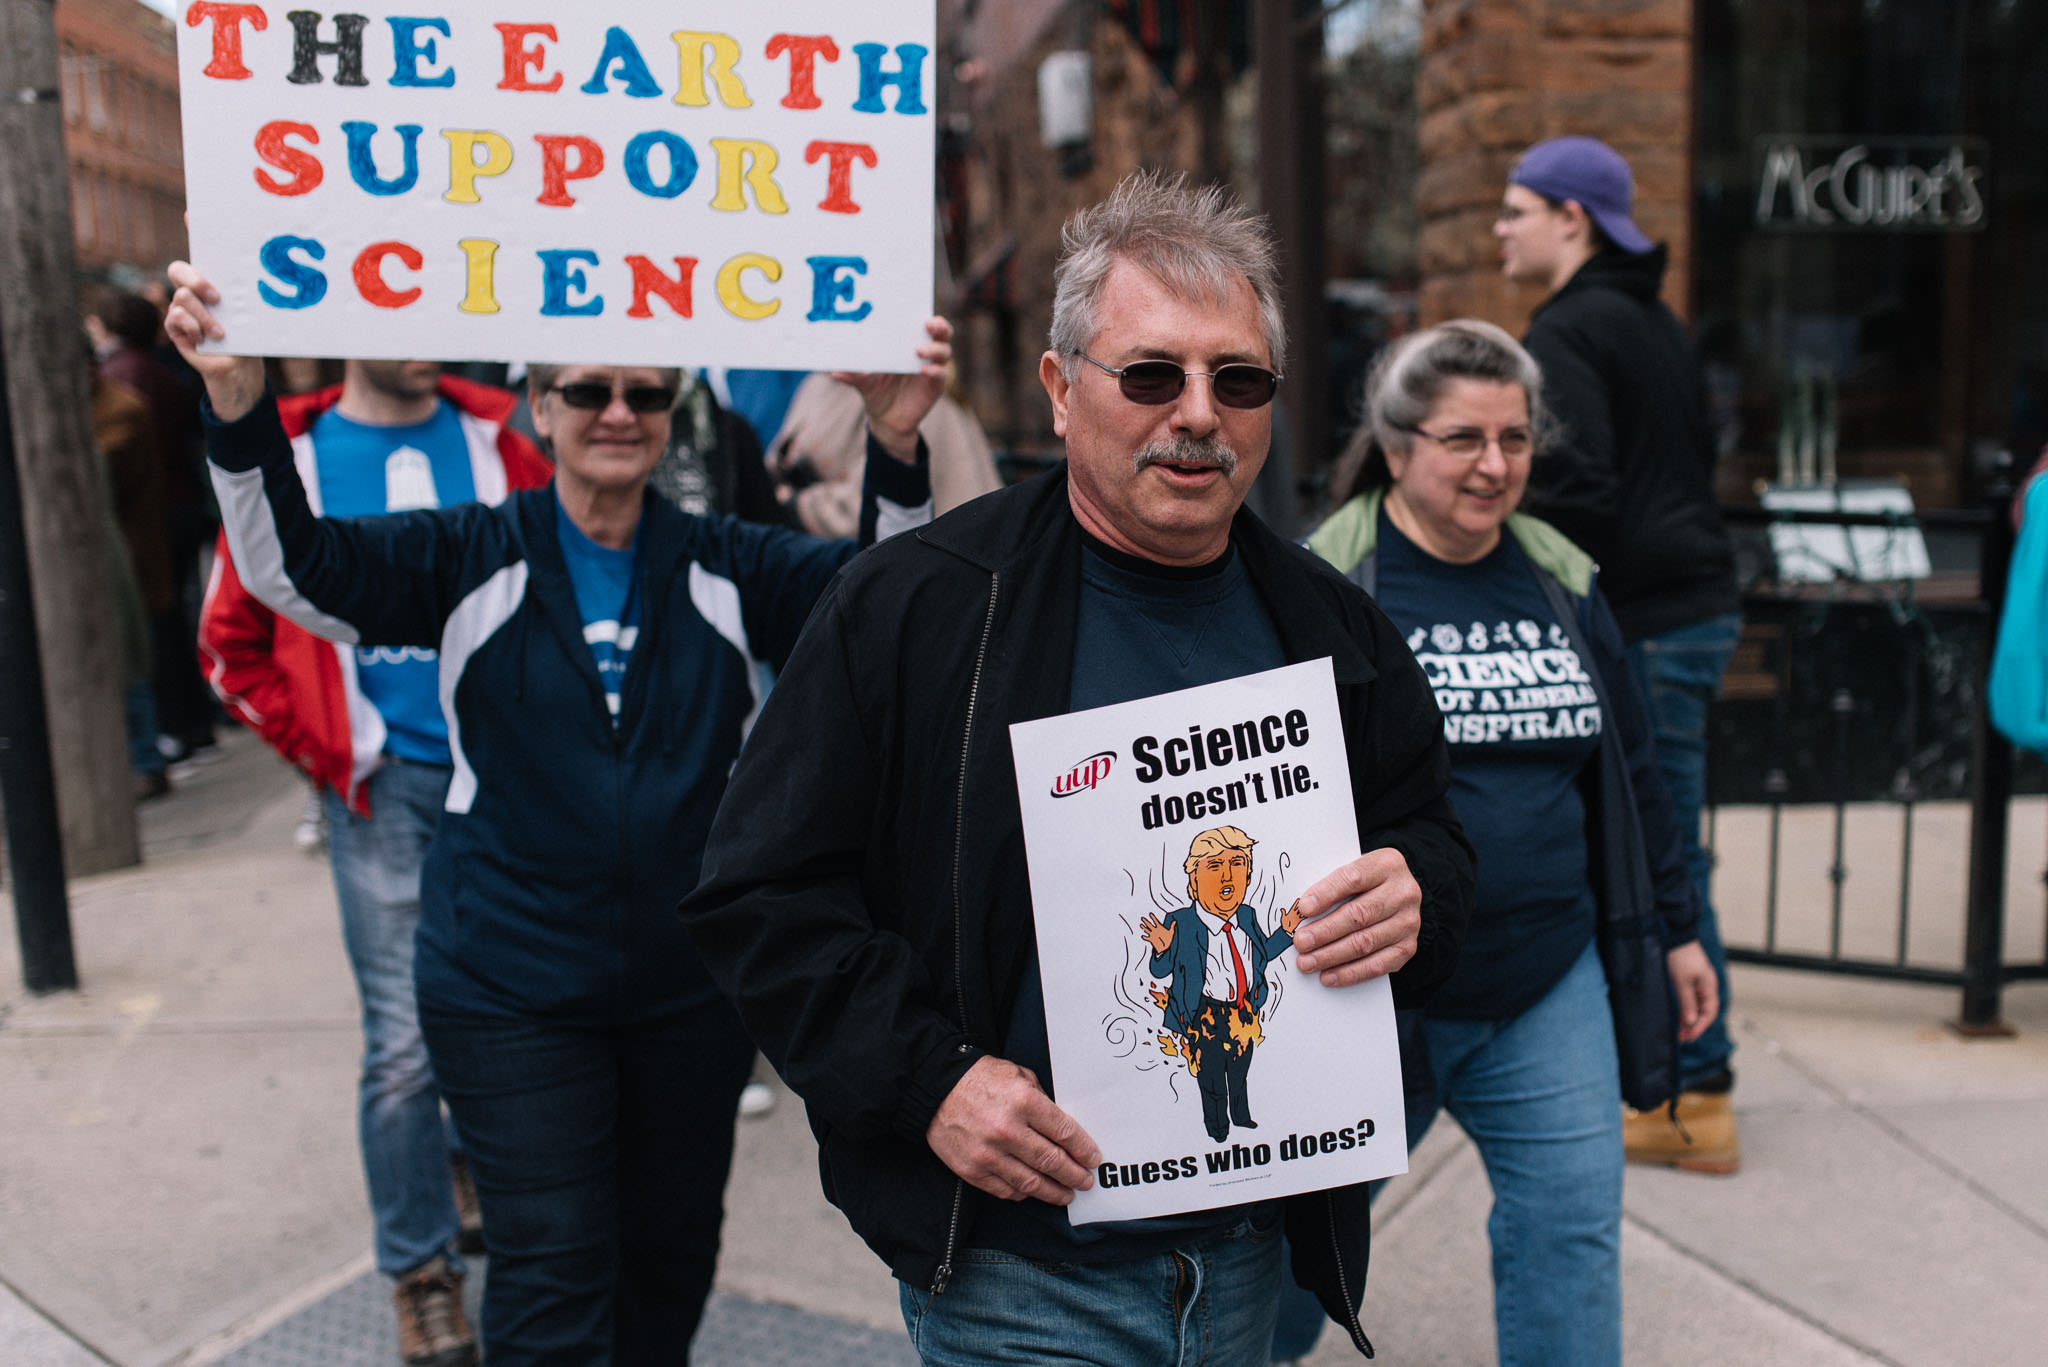 march-for-science-albany-ny-2017-031